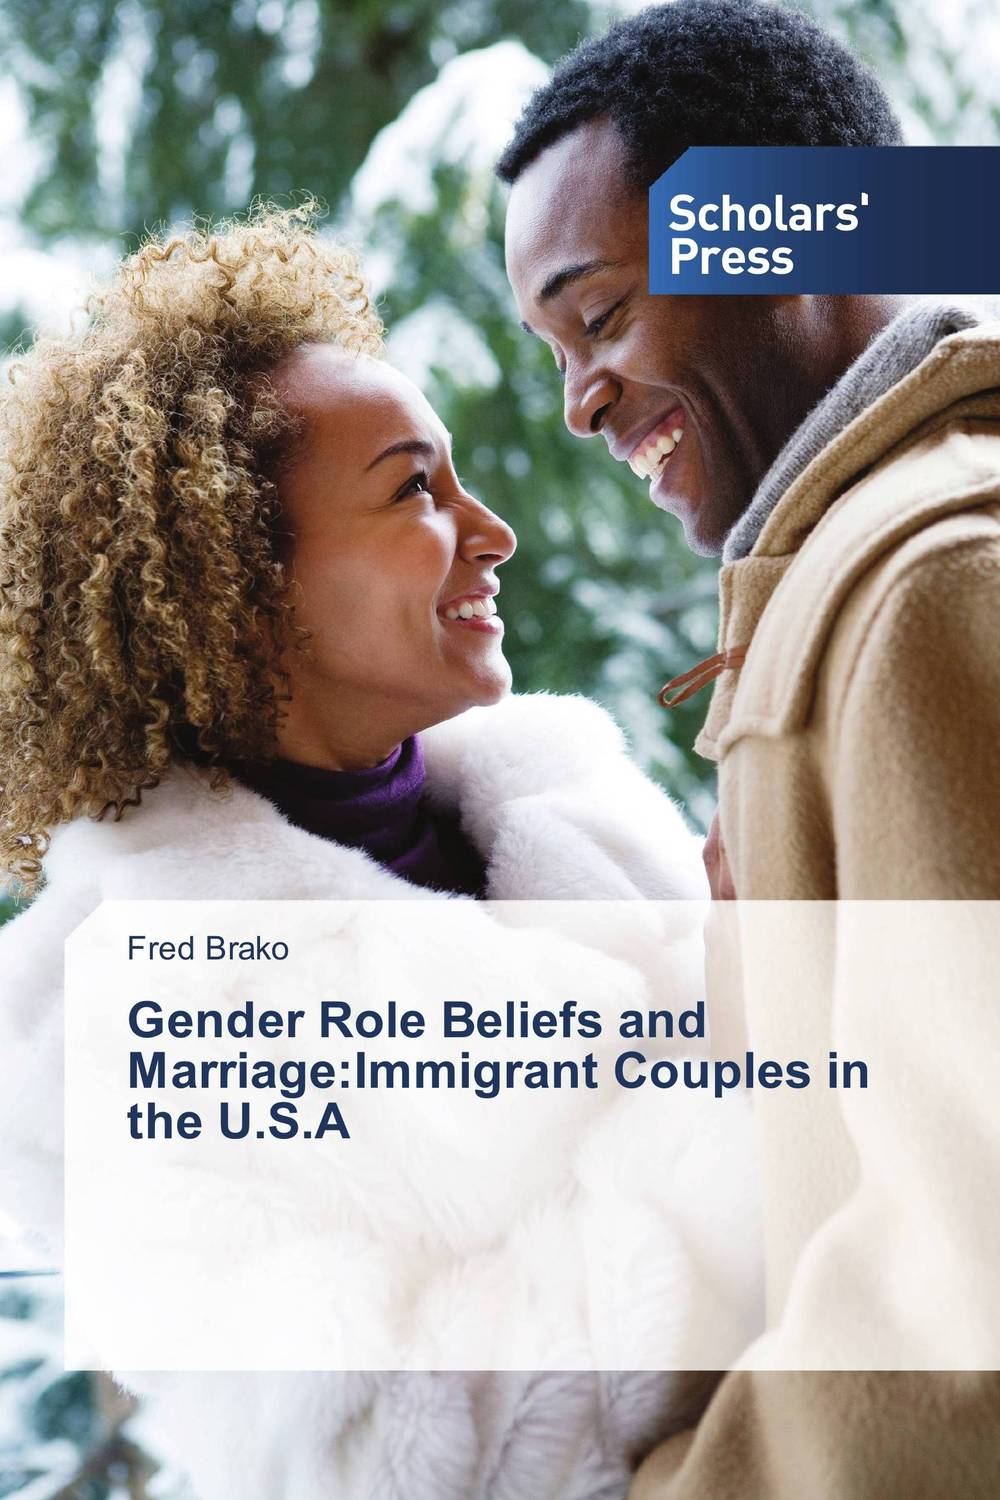 Gender Role Beliefs and Marriage:Immigrant Couples in the U.S.A